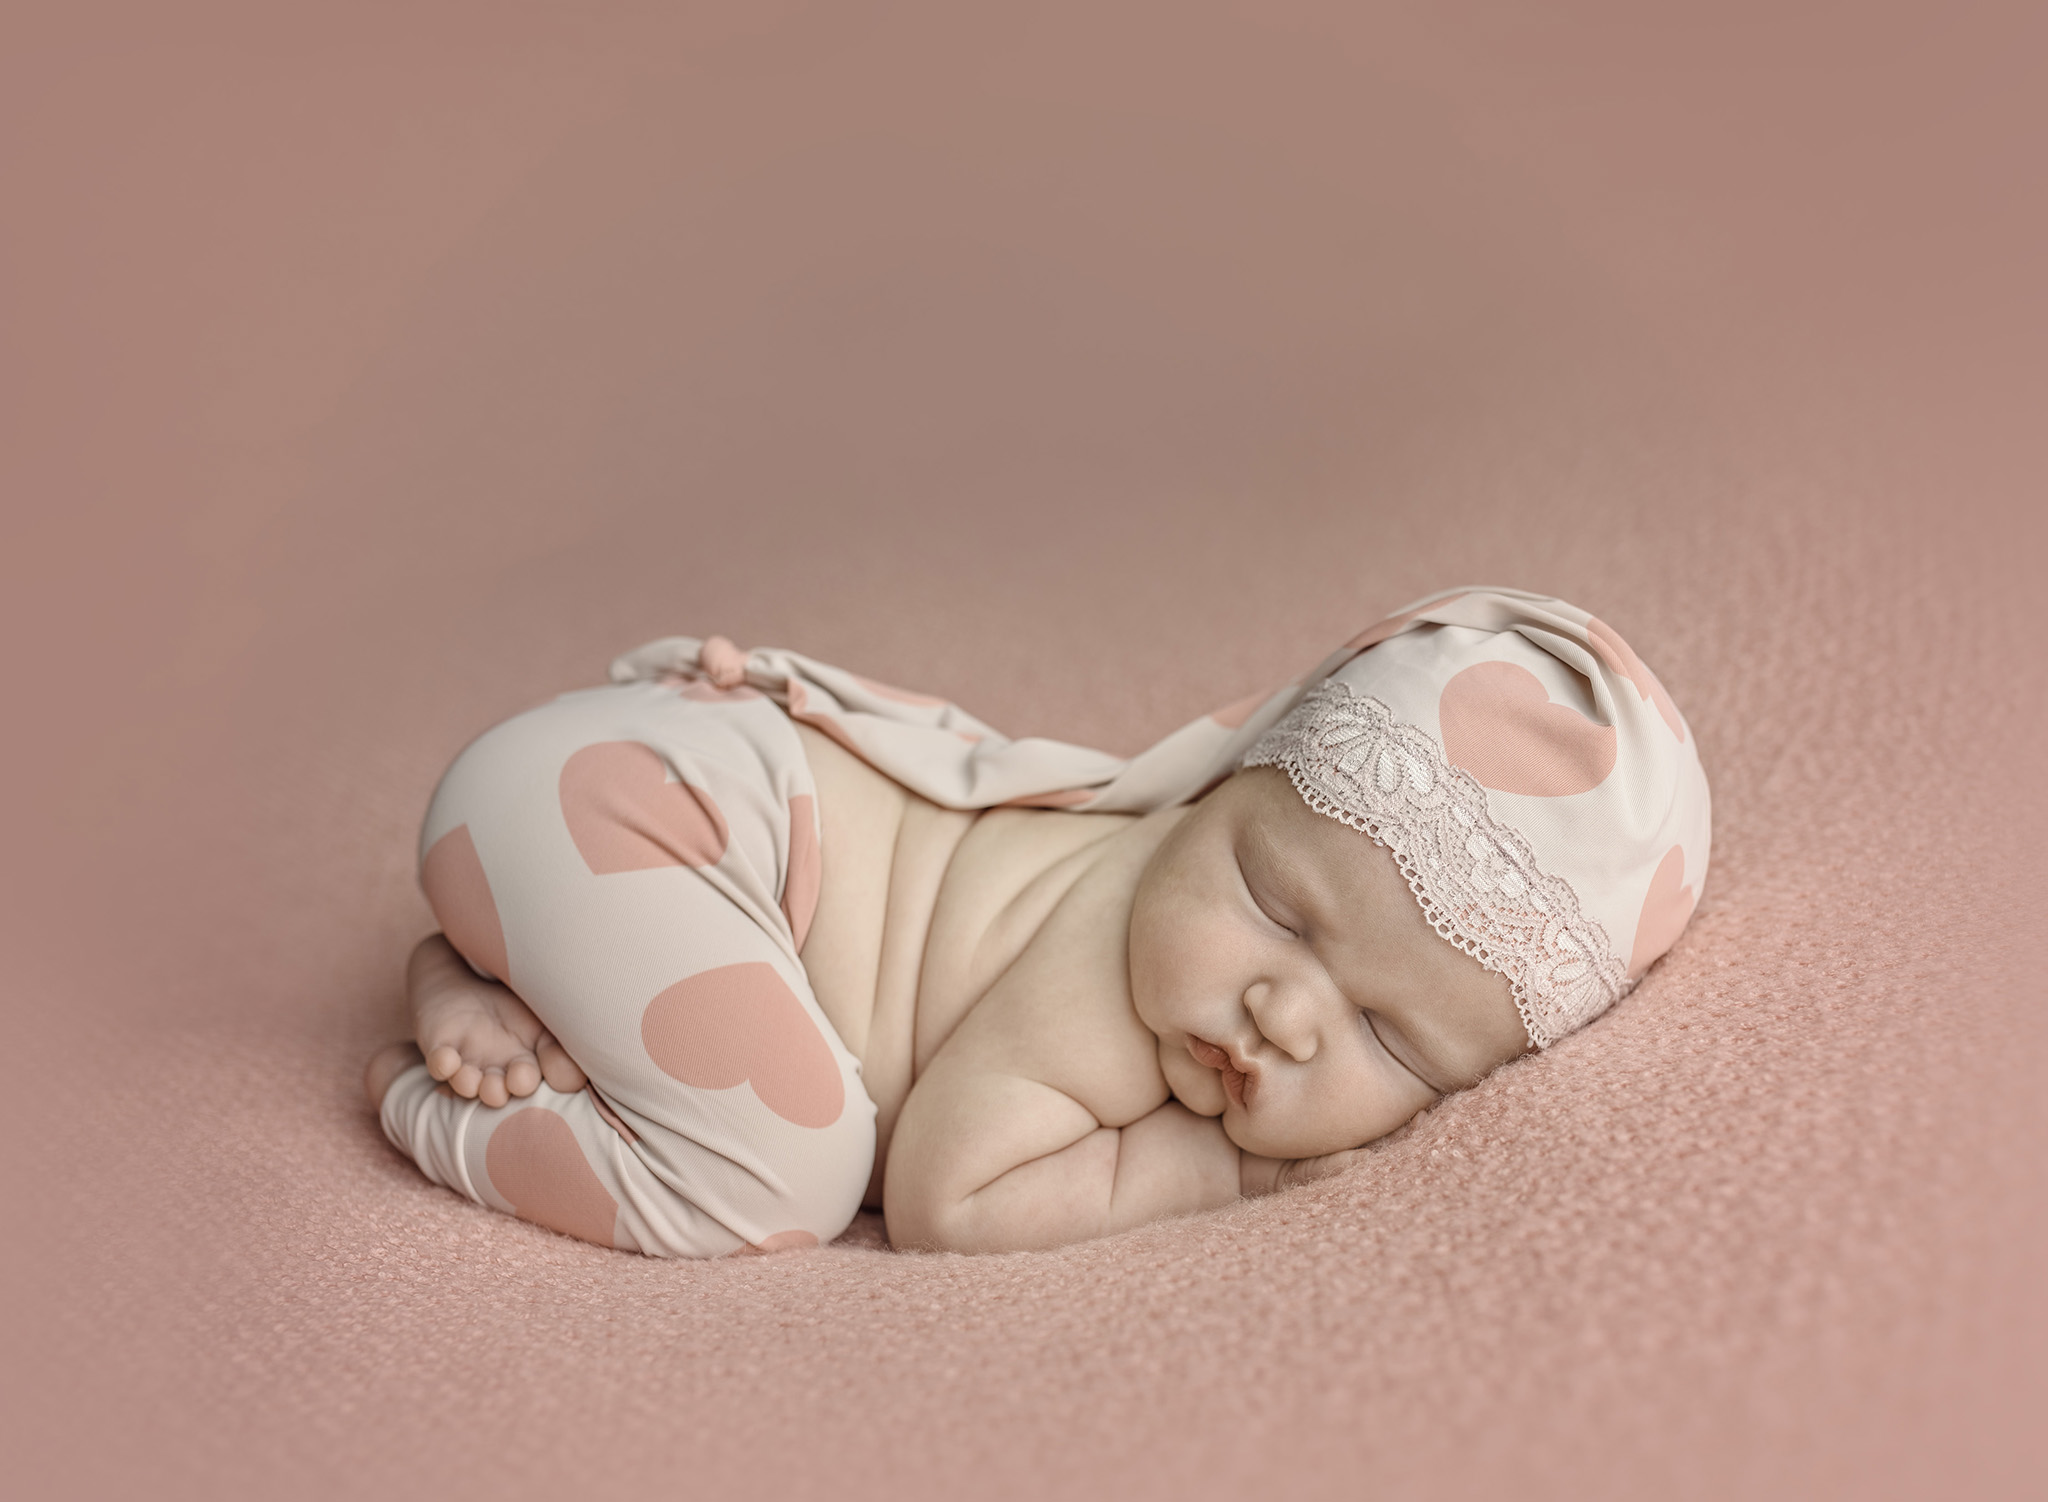 Maternity photography international newborn photography association